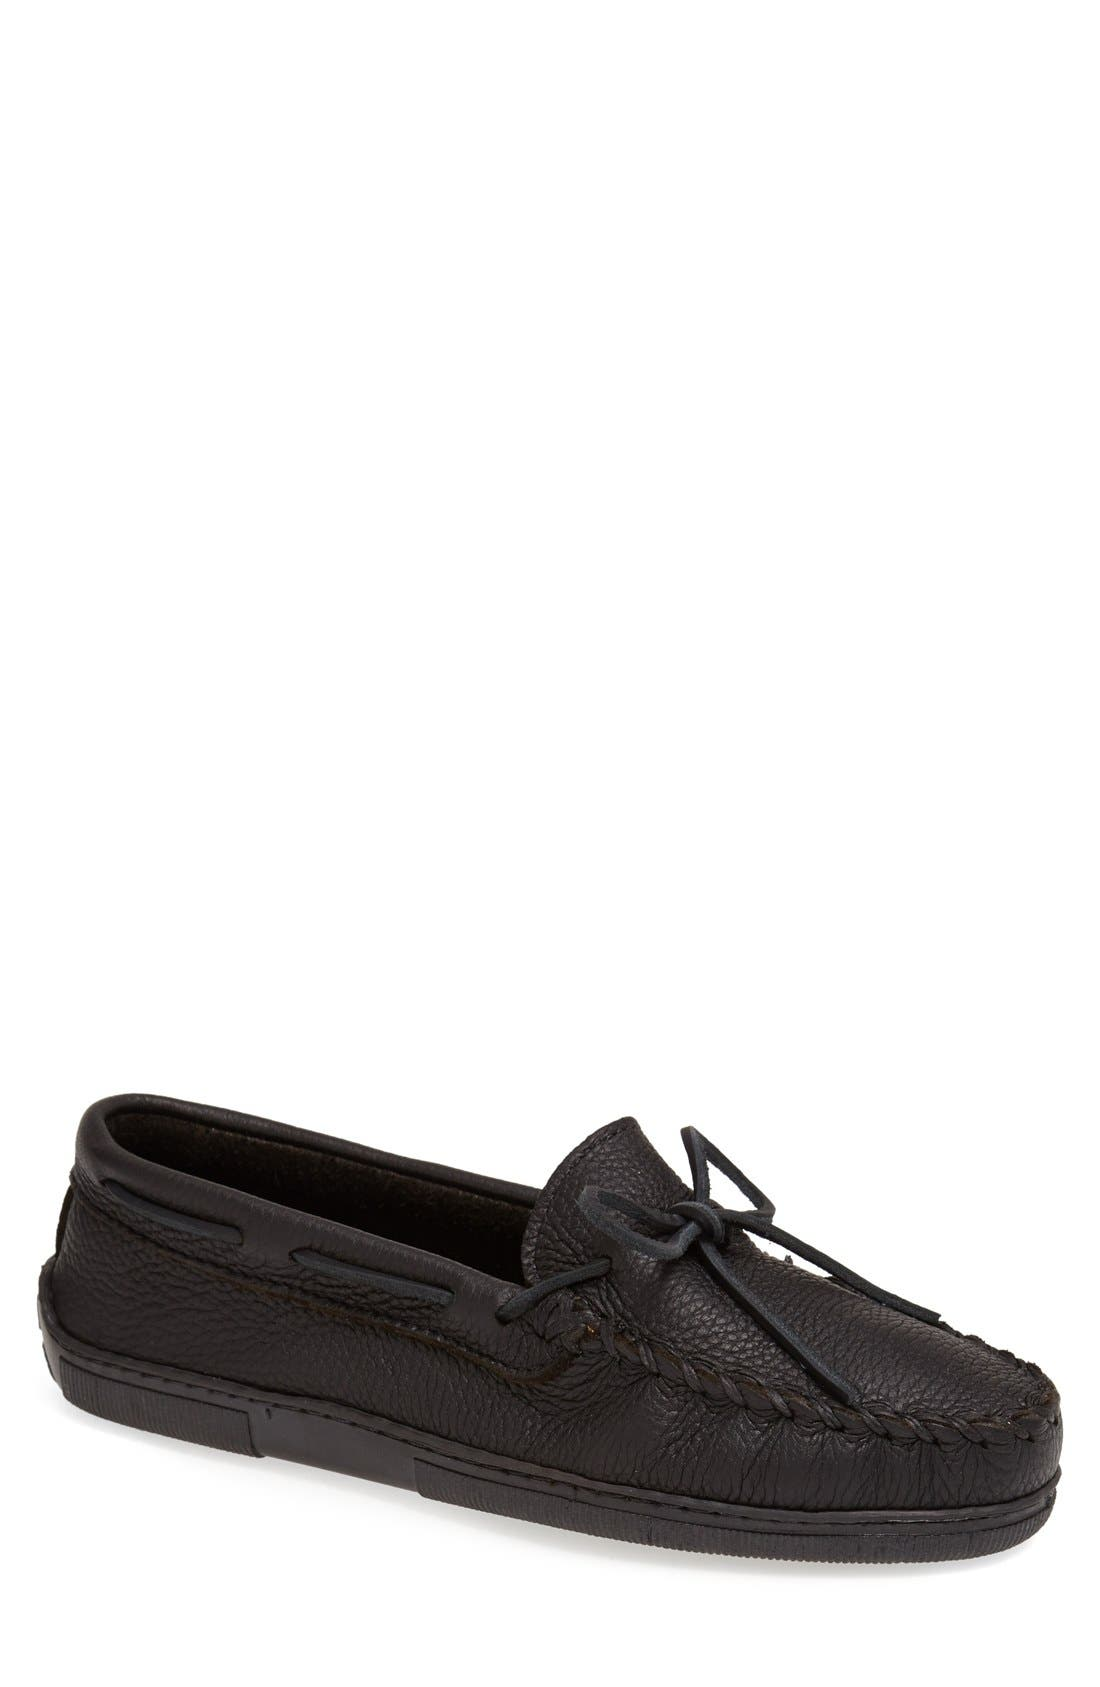 Moosehide Moccasin,                             Main thumbnail 1, color,                             Black